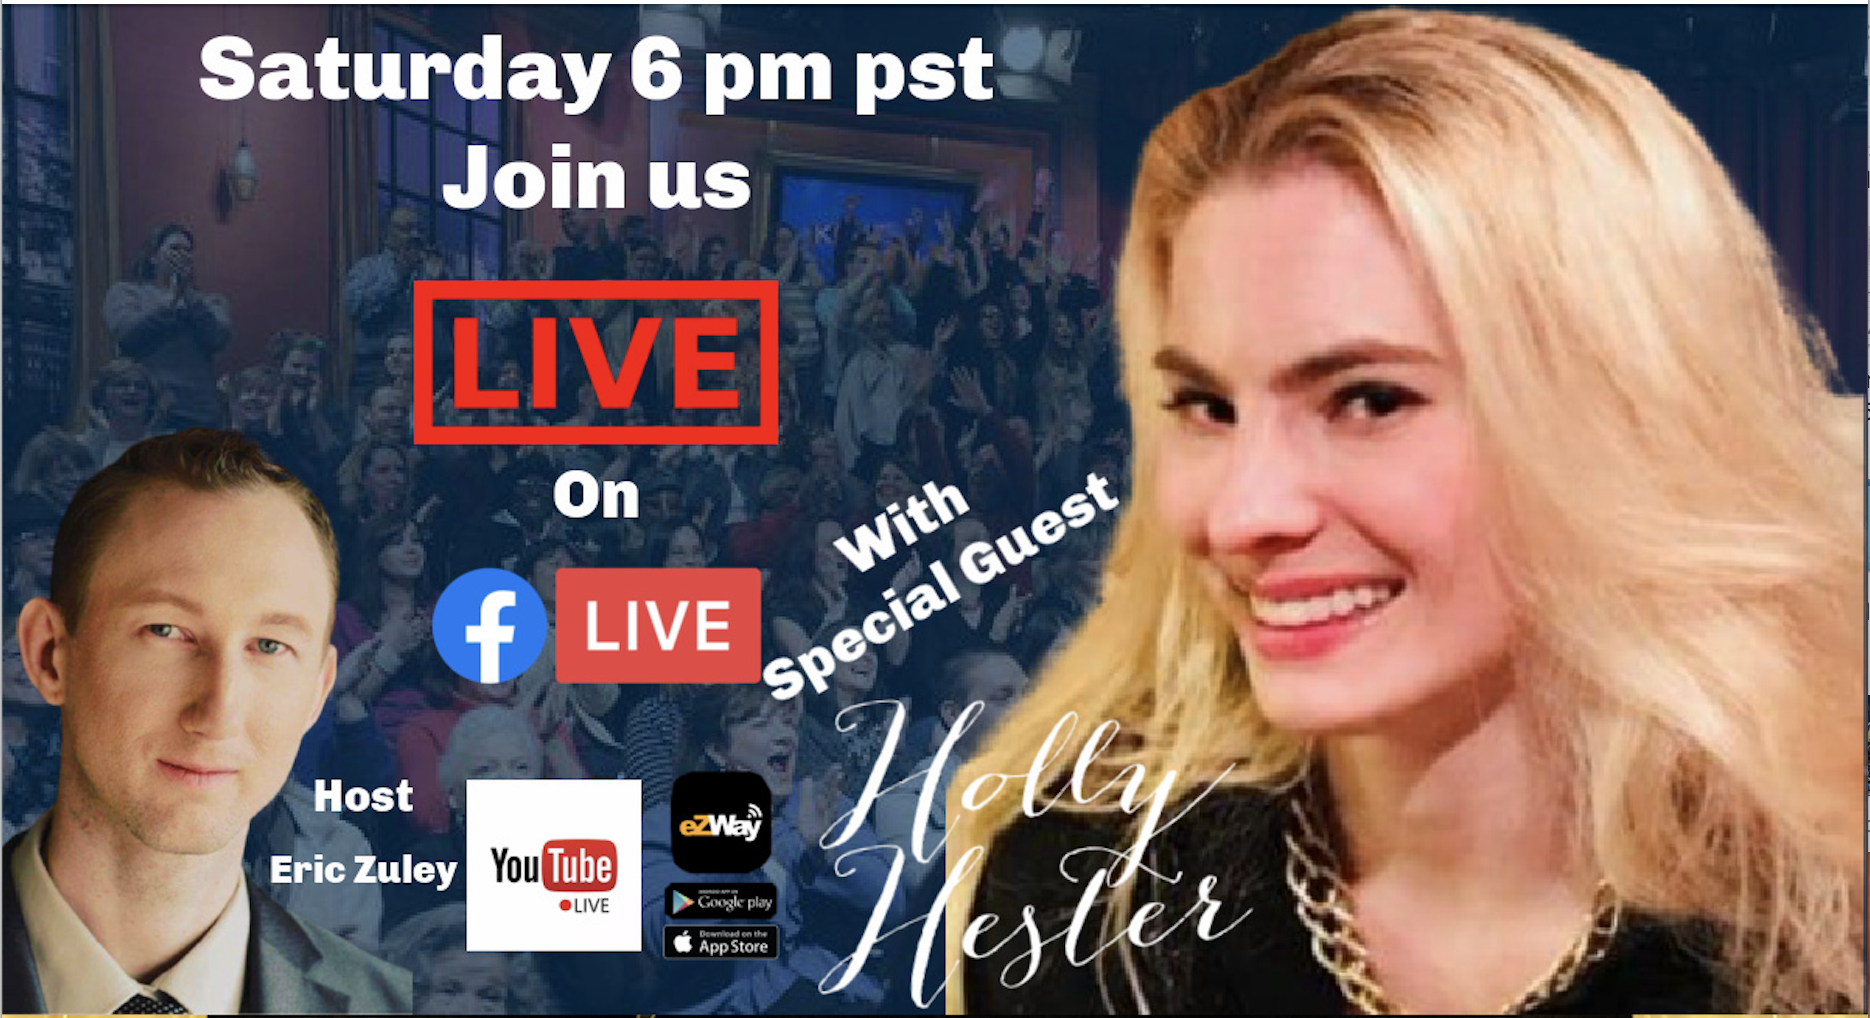 Minister Holly Hester eZWay Live Interview